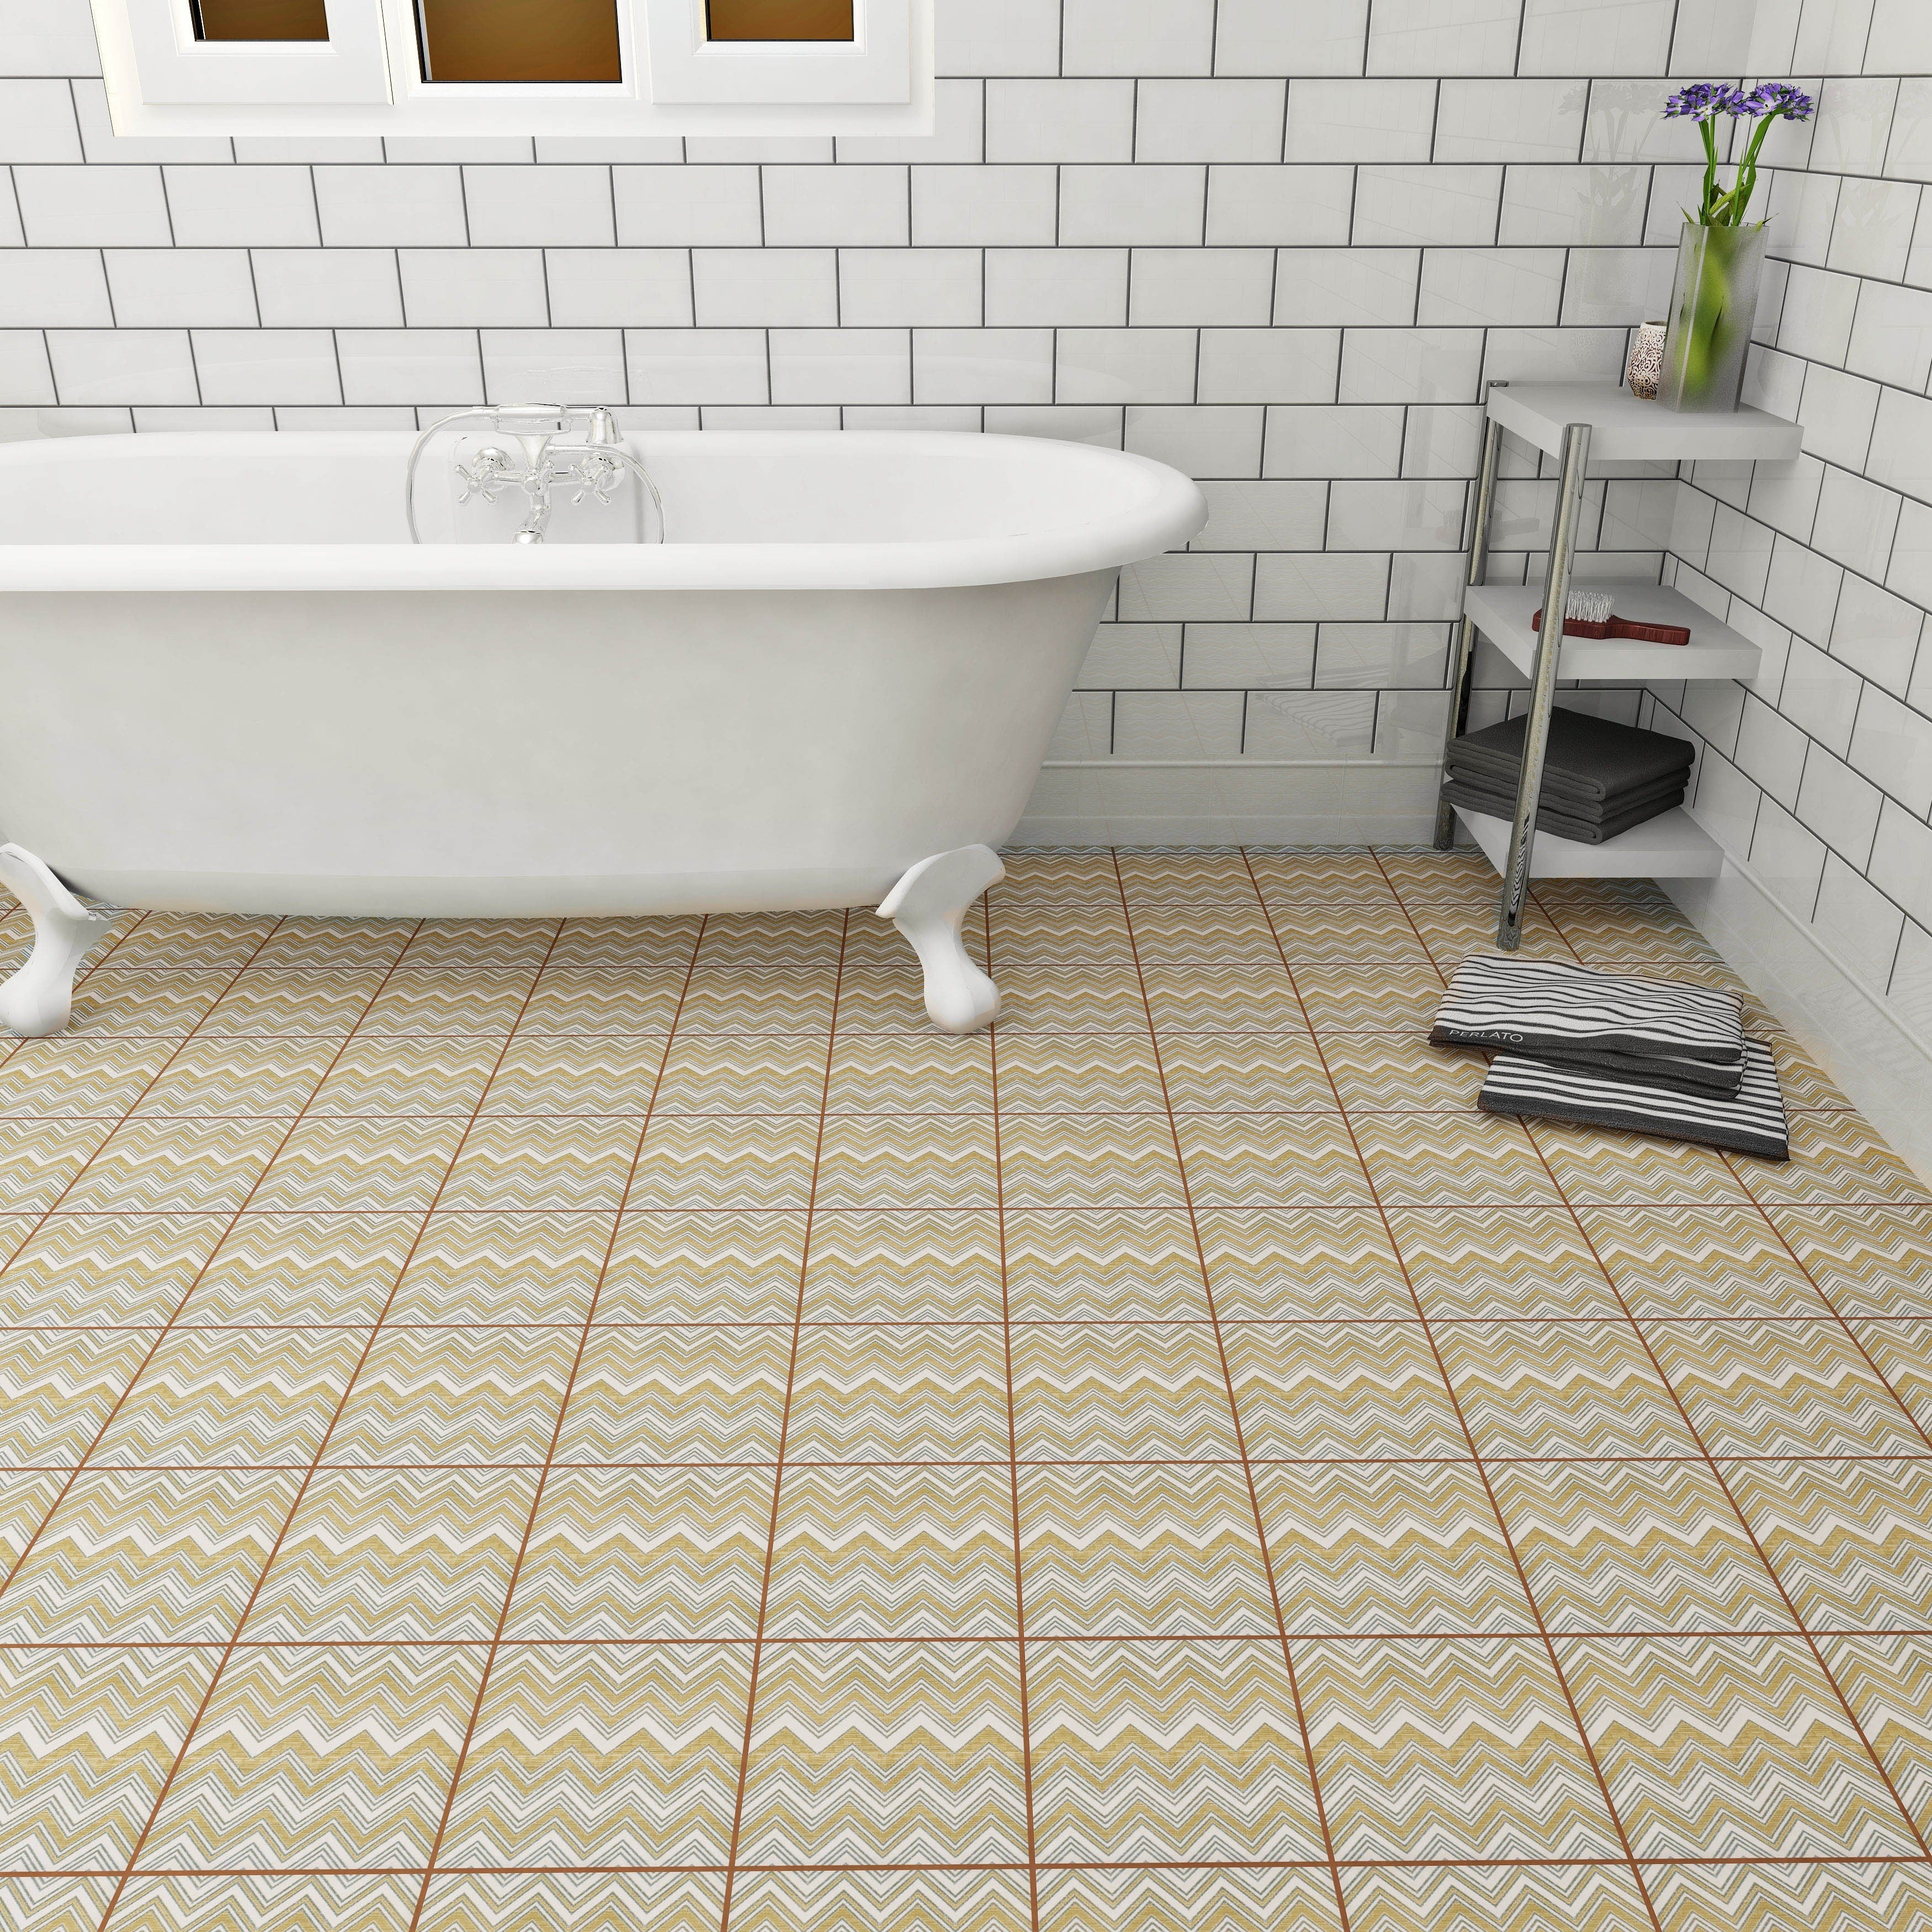 SomerTile 7.75x7.75-inch Puccini Wave Ceramic Floor and Wall Tile ...